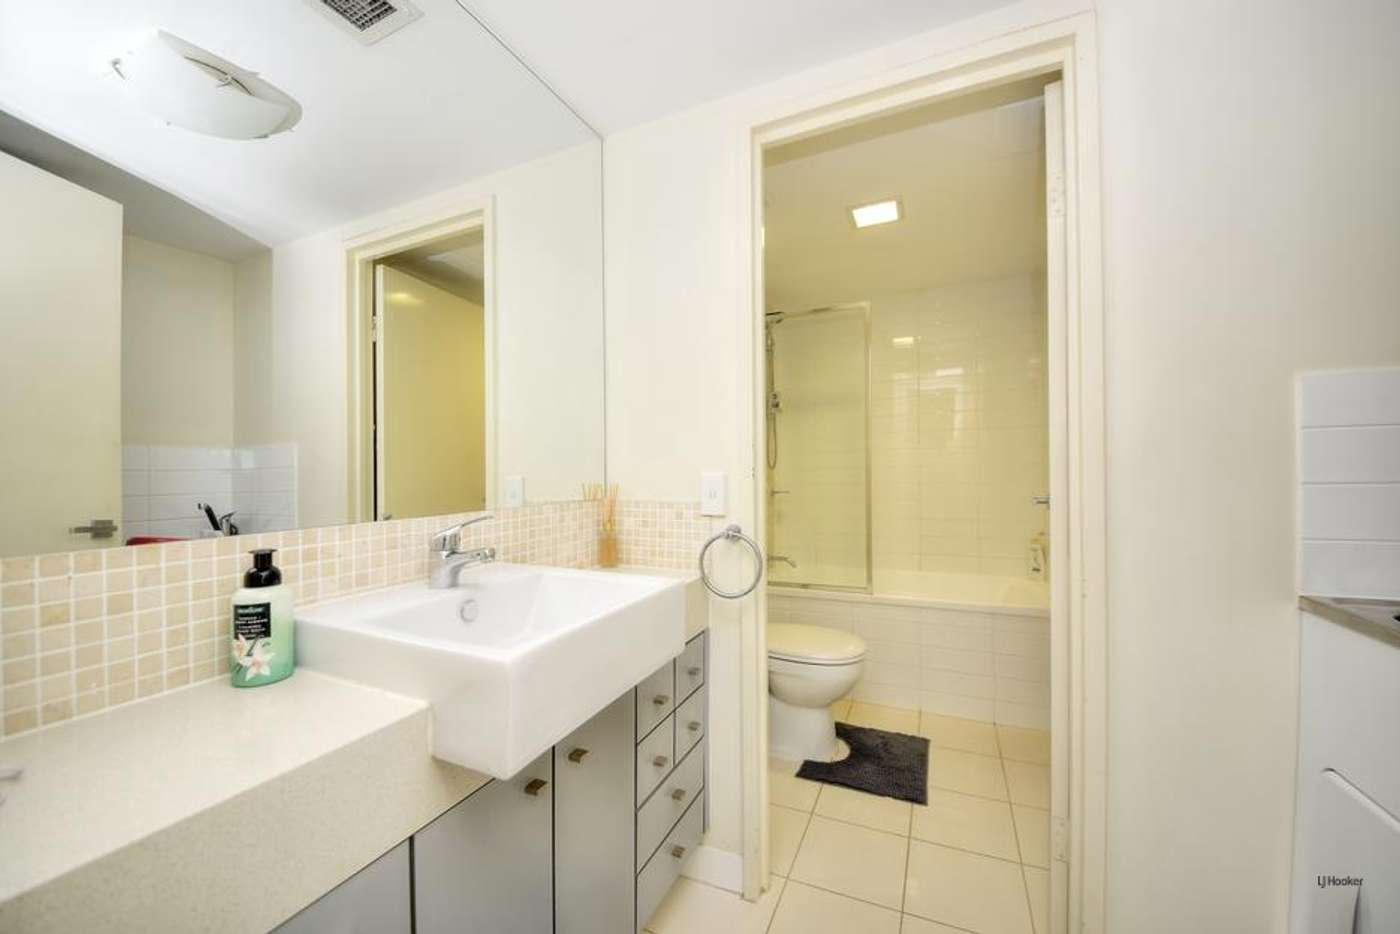 Sixth view of Homely unit listing, 1504/10 Fifth Avenue, Palm Beach QLD 4221